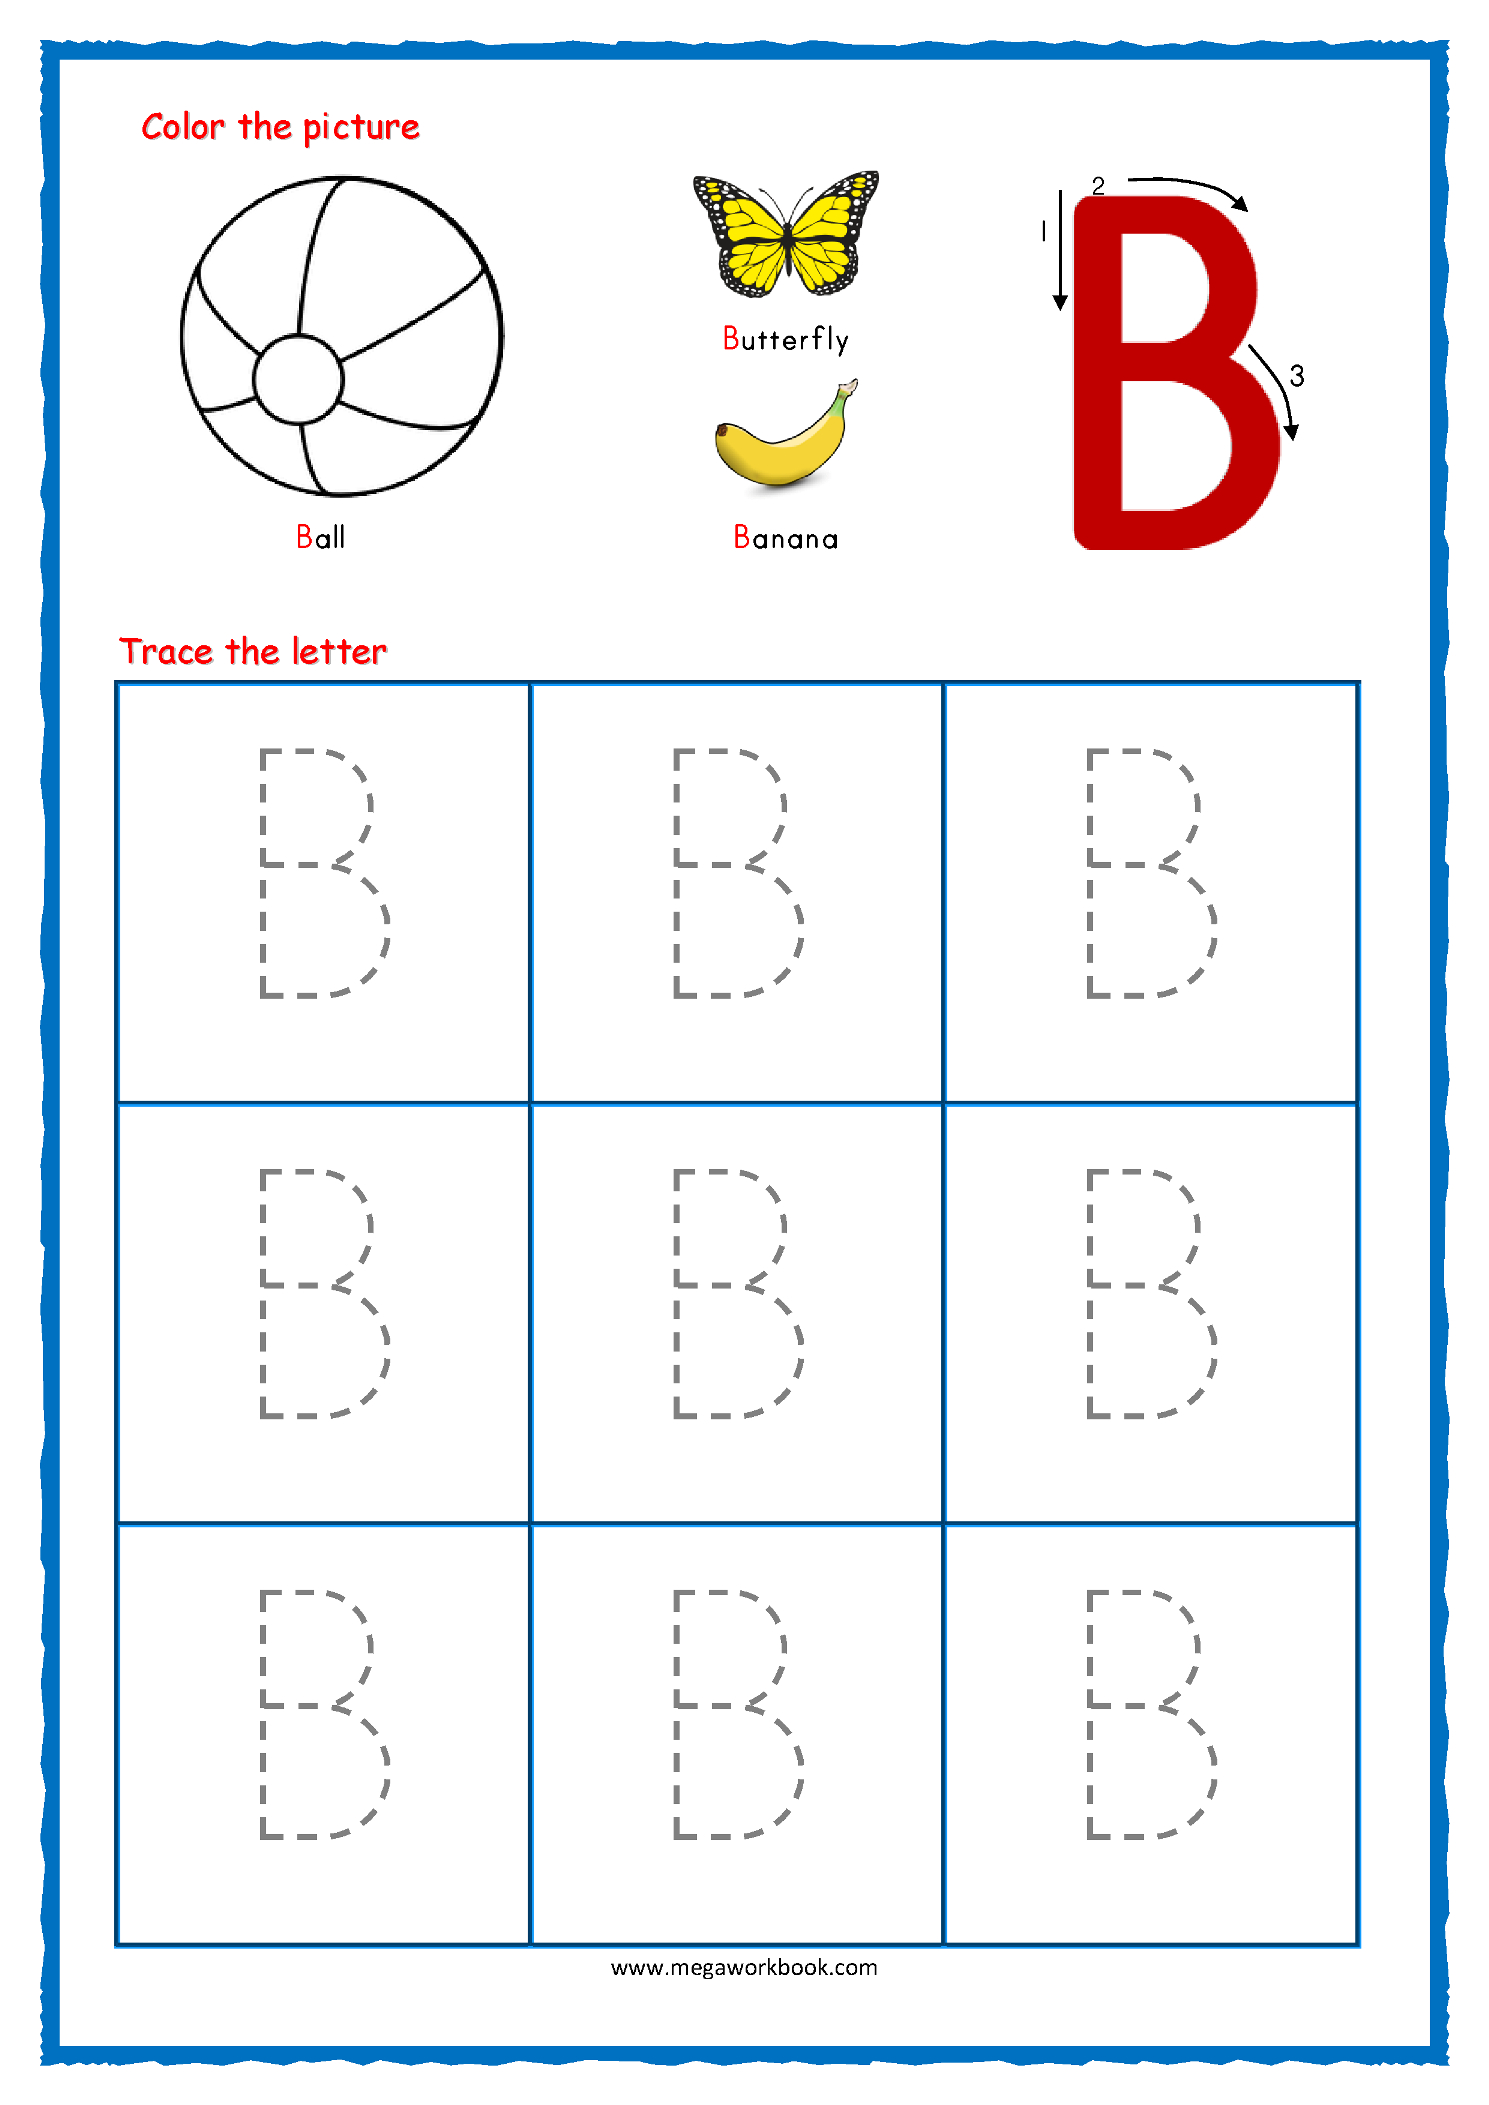 Tracing Letters - Alphabet Tracing - Capital Letters pertaining to Alphabet Tracing Printables Free